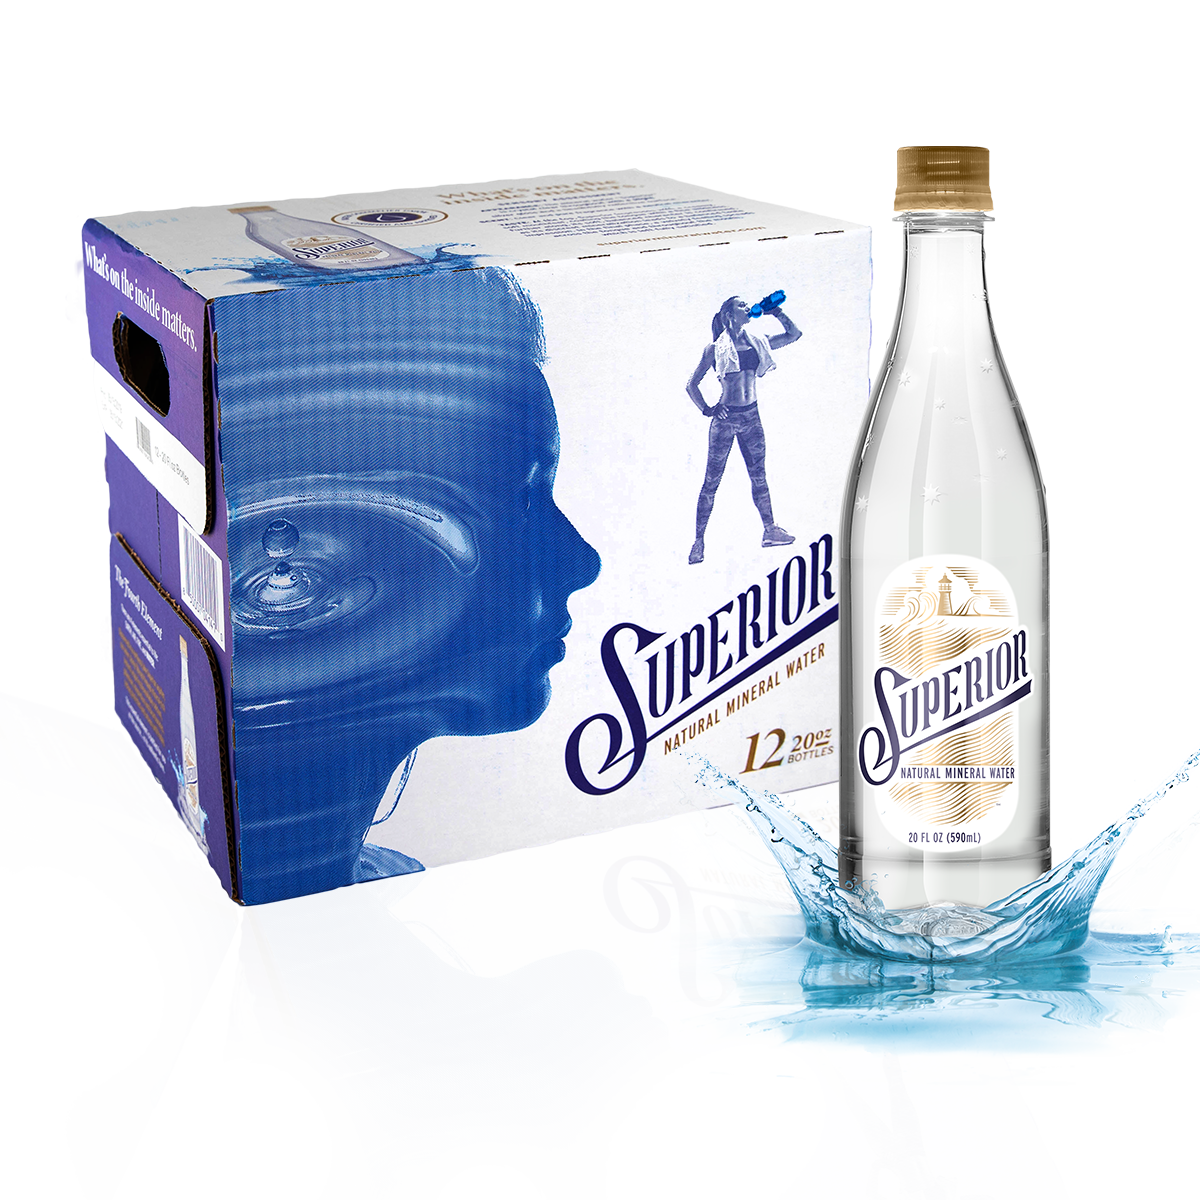 Image of the Superior Natural Mineral Water products - 20 oz. single bottle and 12 pack box of 20 oz bottles.